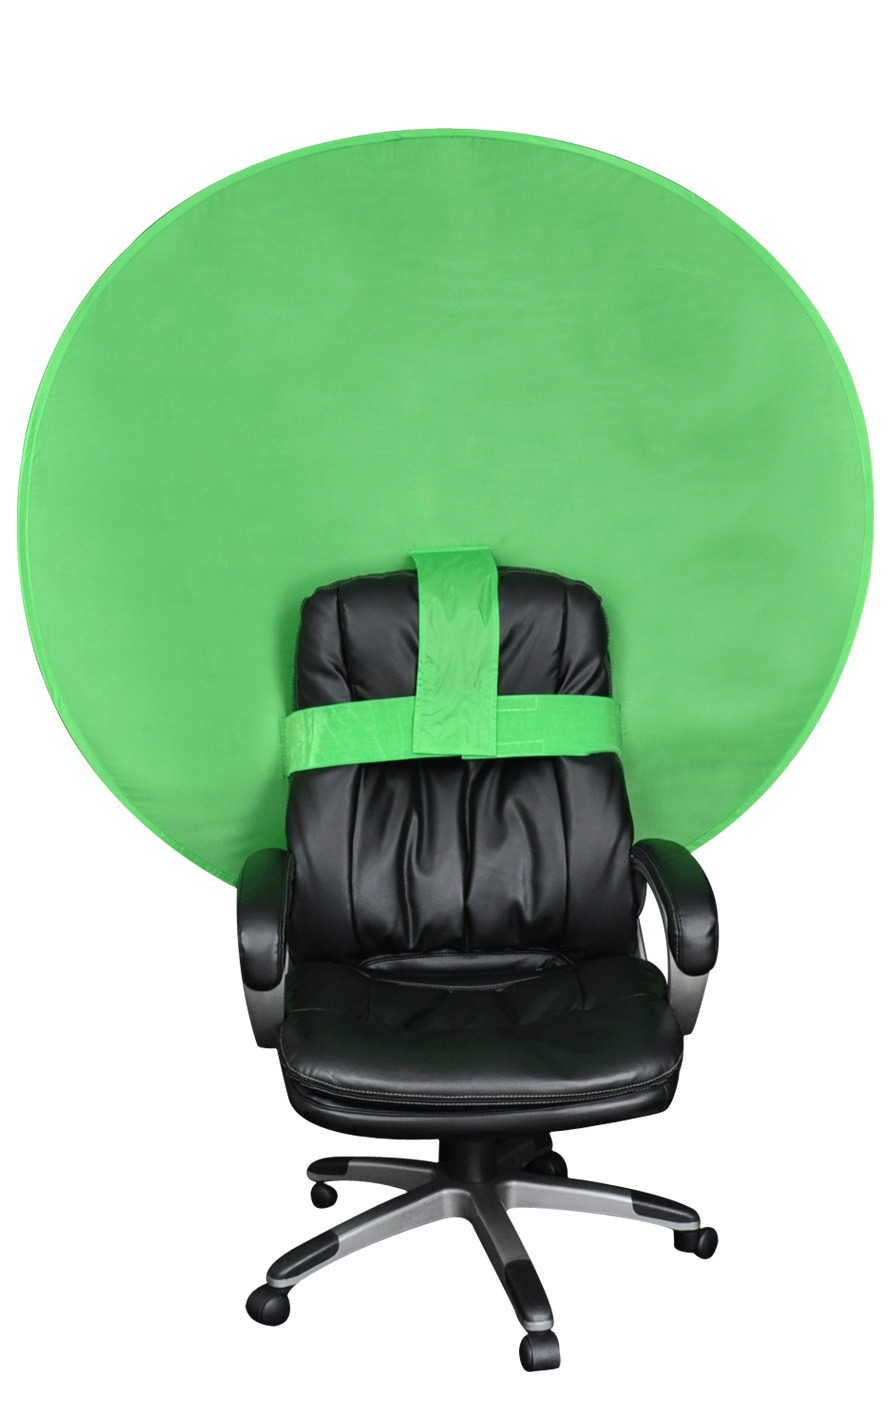 The Big Shot Green Screen Webcam Background For A Chair